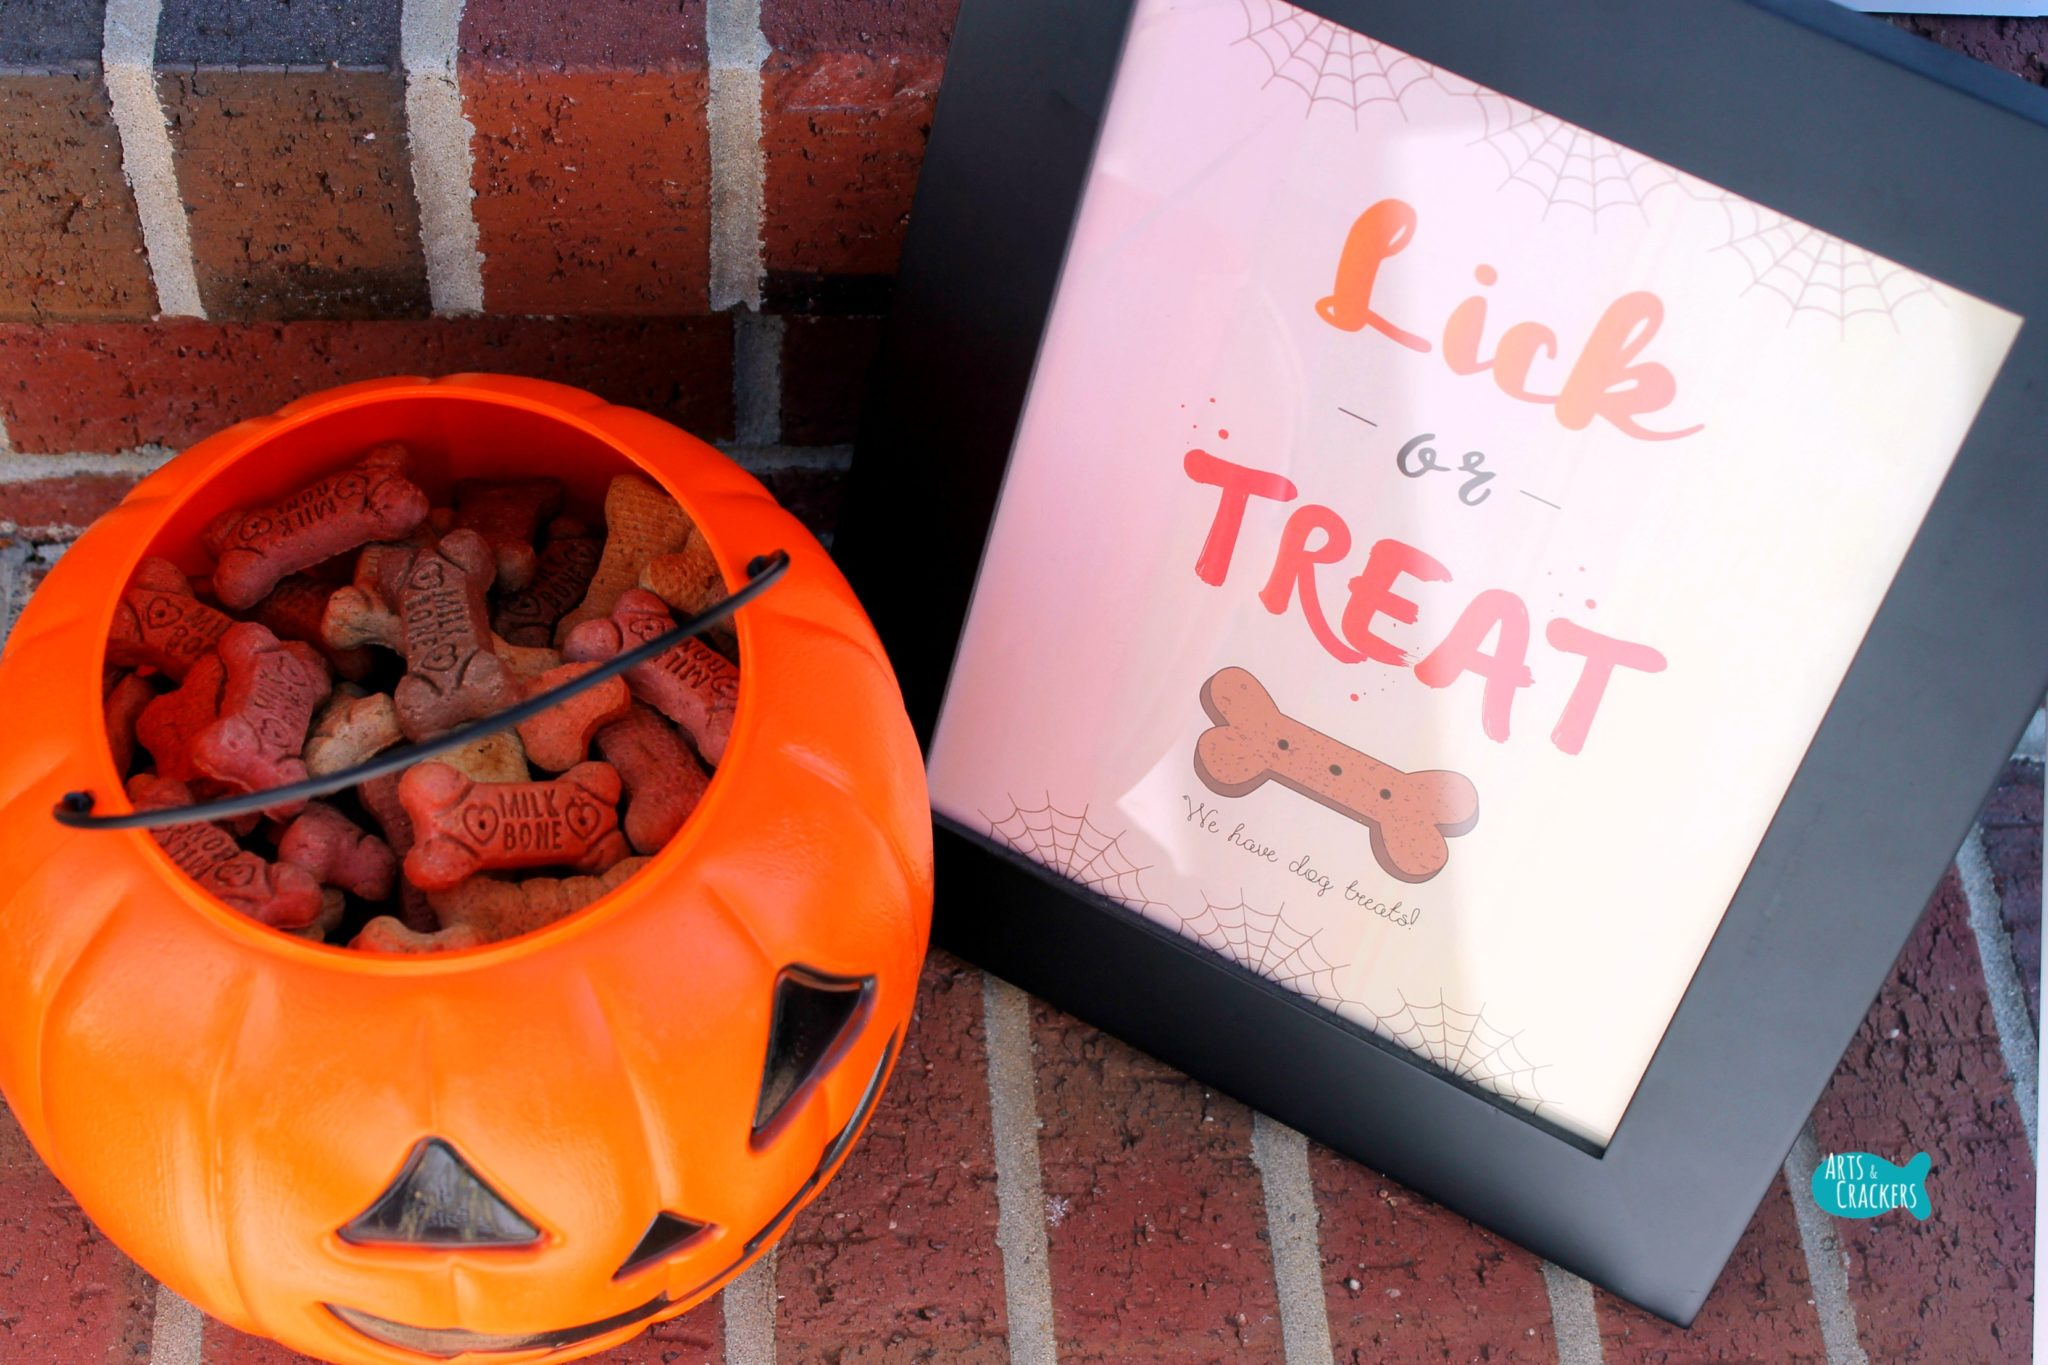 Printable 'Lick or Treat' Sign for Dog Treats